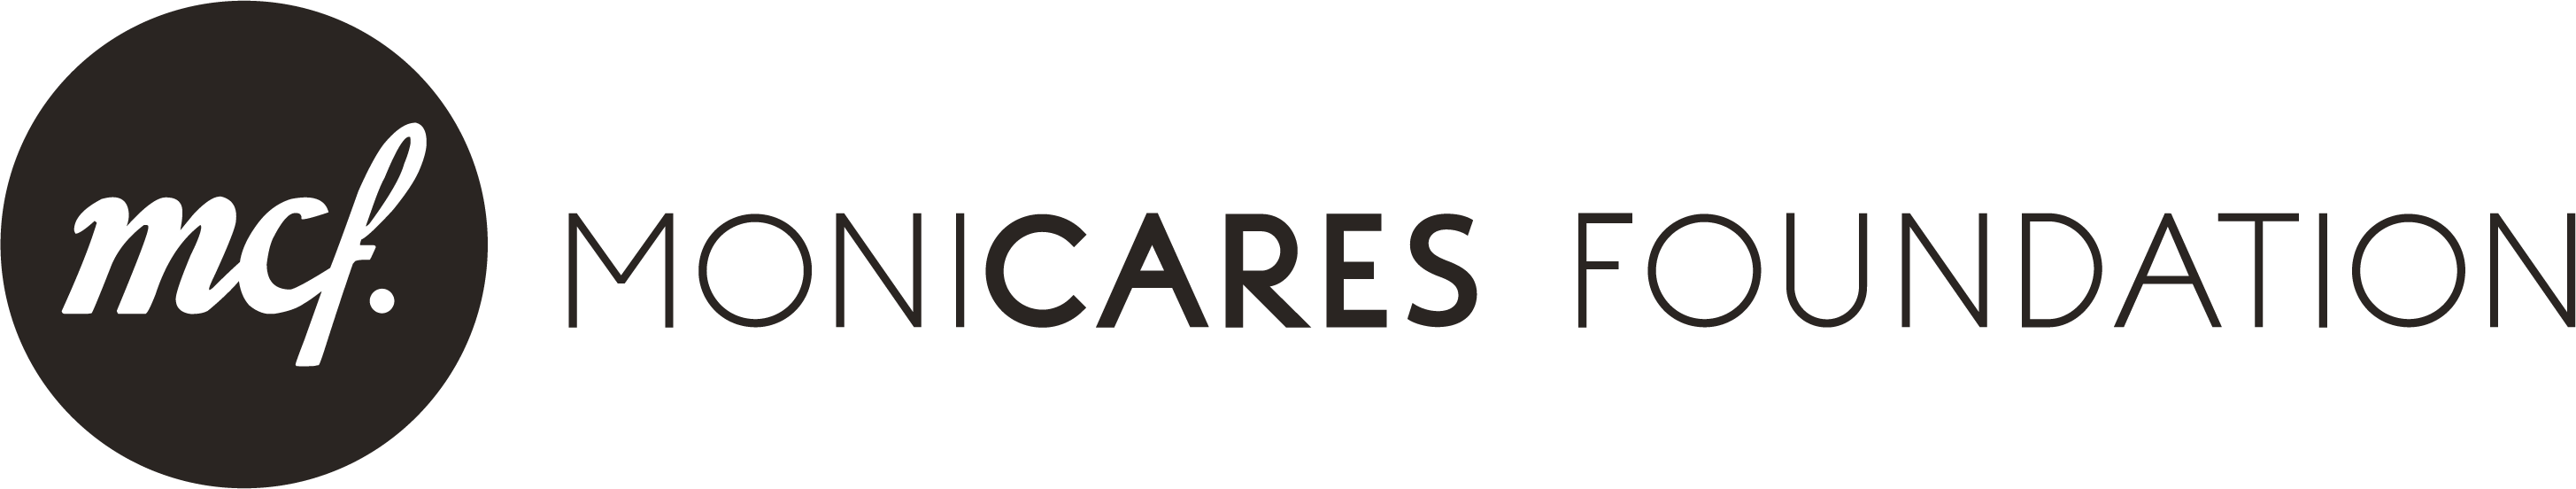 monicares foundation logo